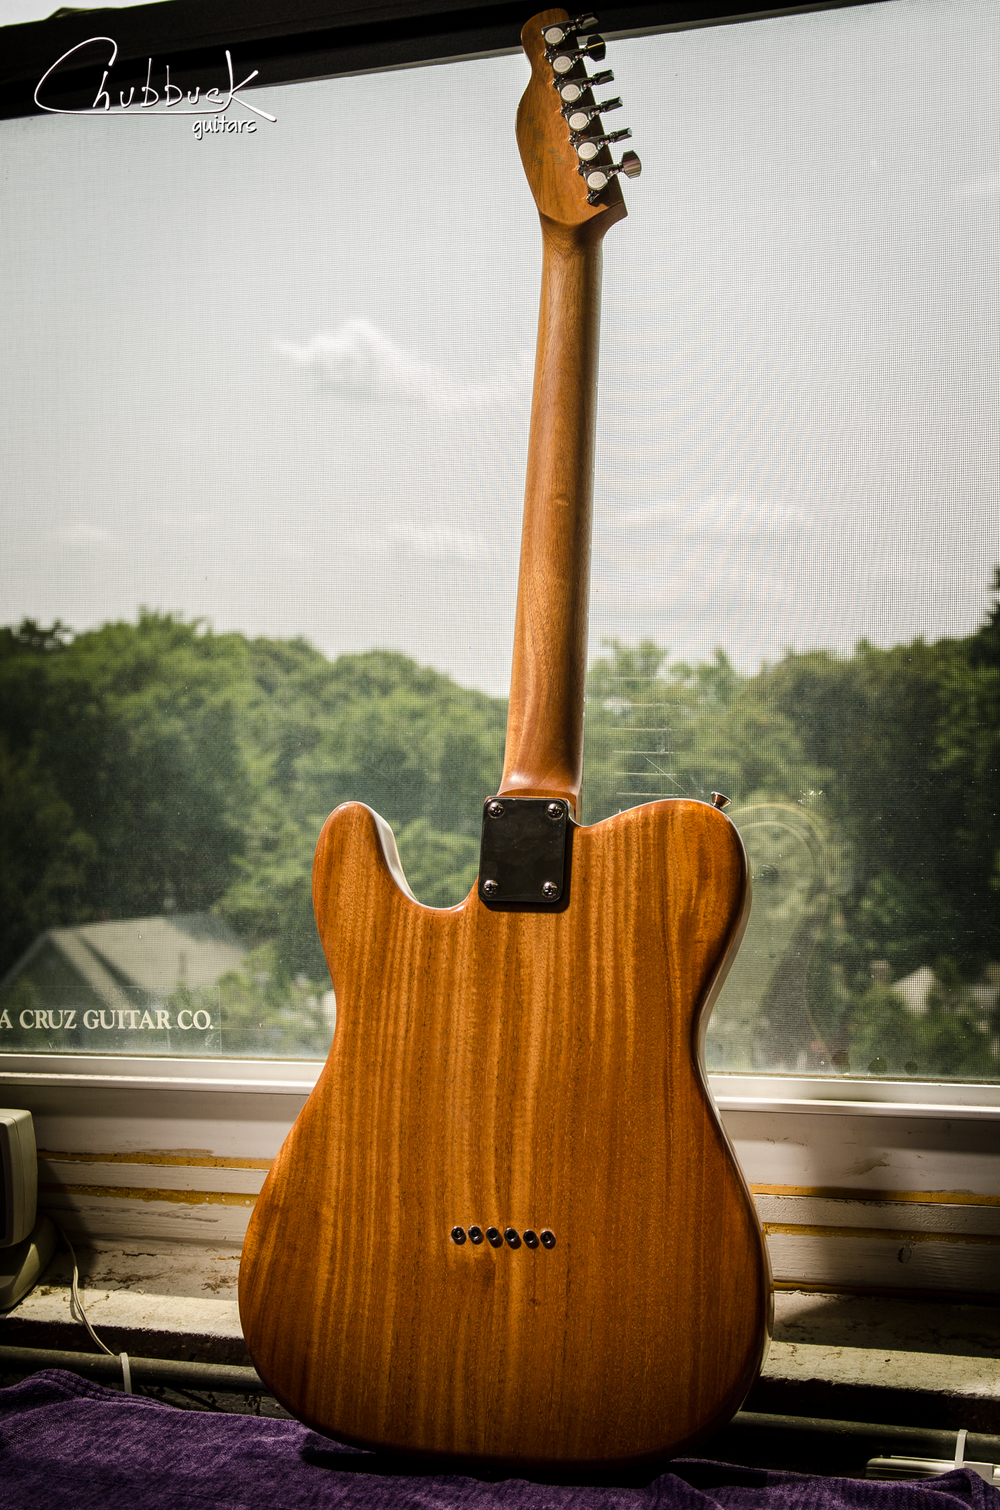 Neck Carve Rewire 2014 Jw Van Tele 91 Lbs Chubbuck Guitars Guitar Rewiring A Custom In For Replacement 6 Way Freeway Switch And Add Master Volume Recarve Mmmm P90s